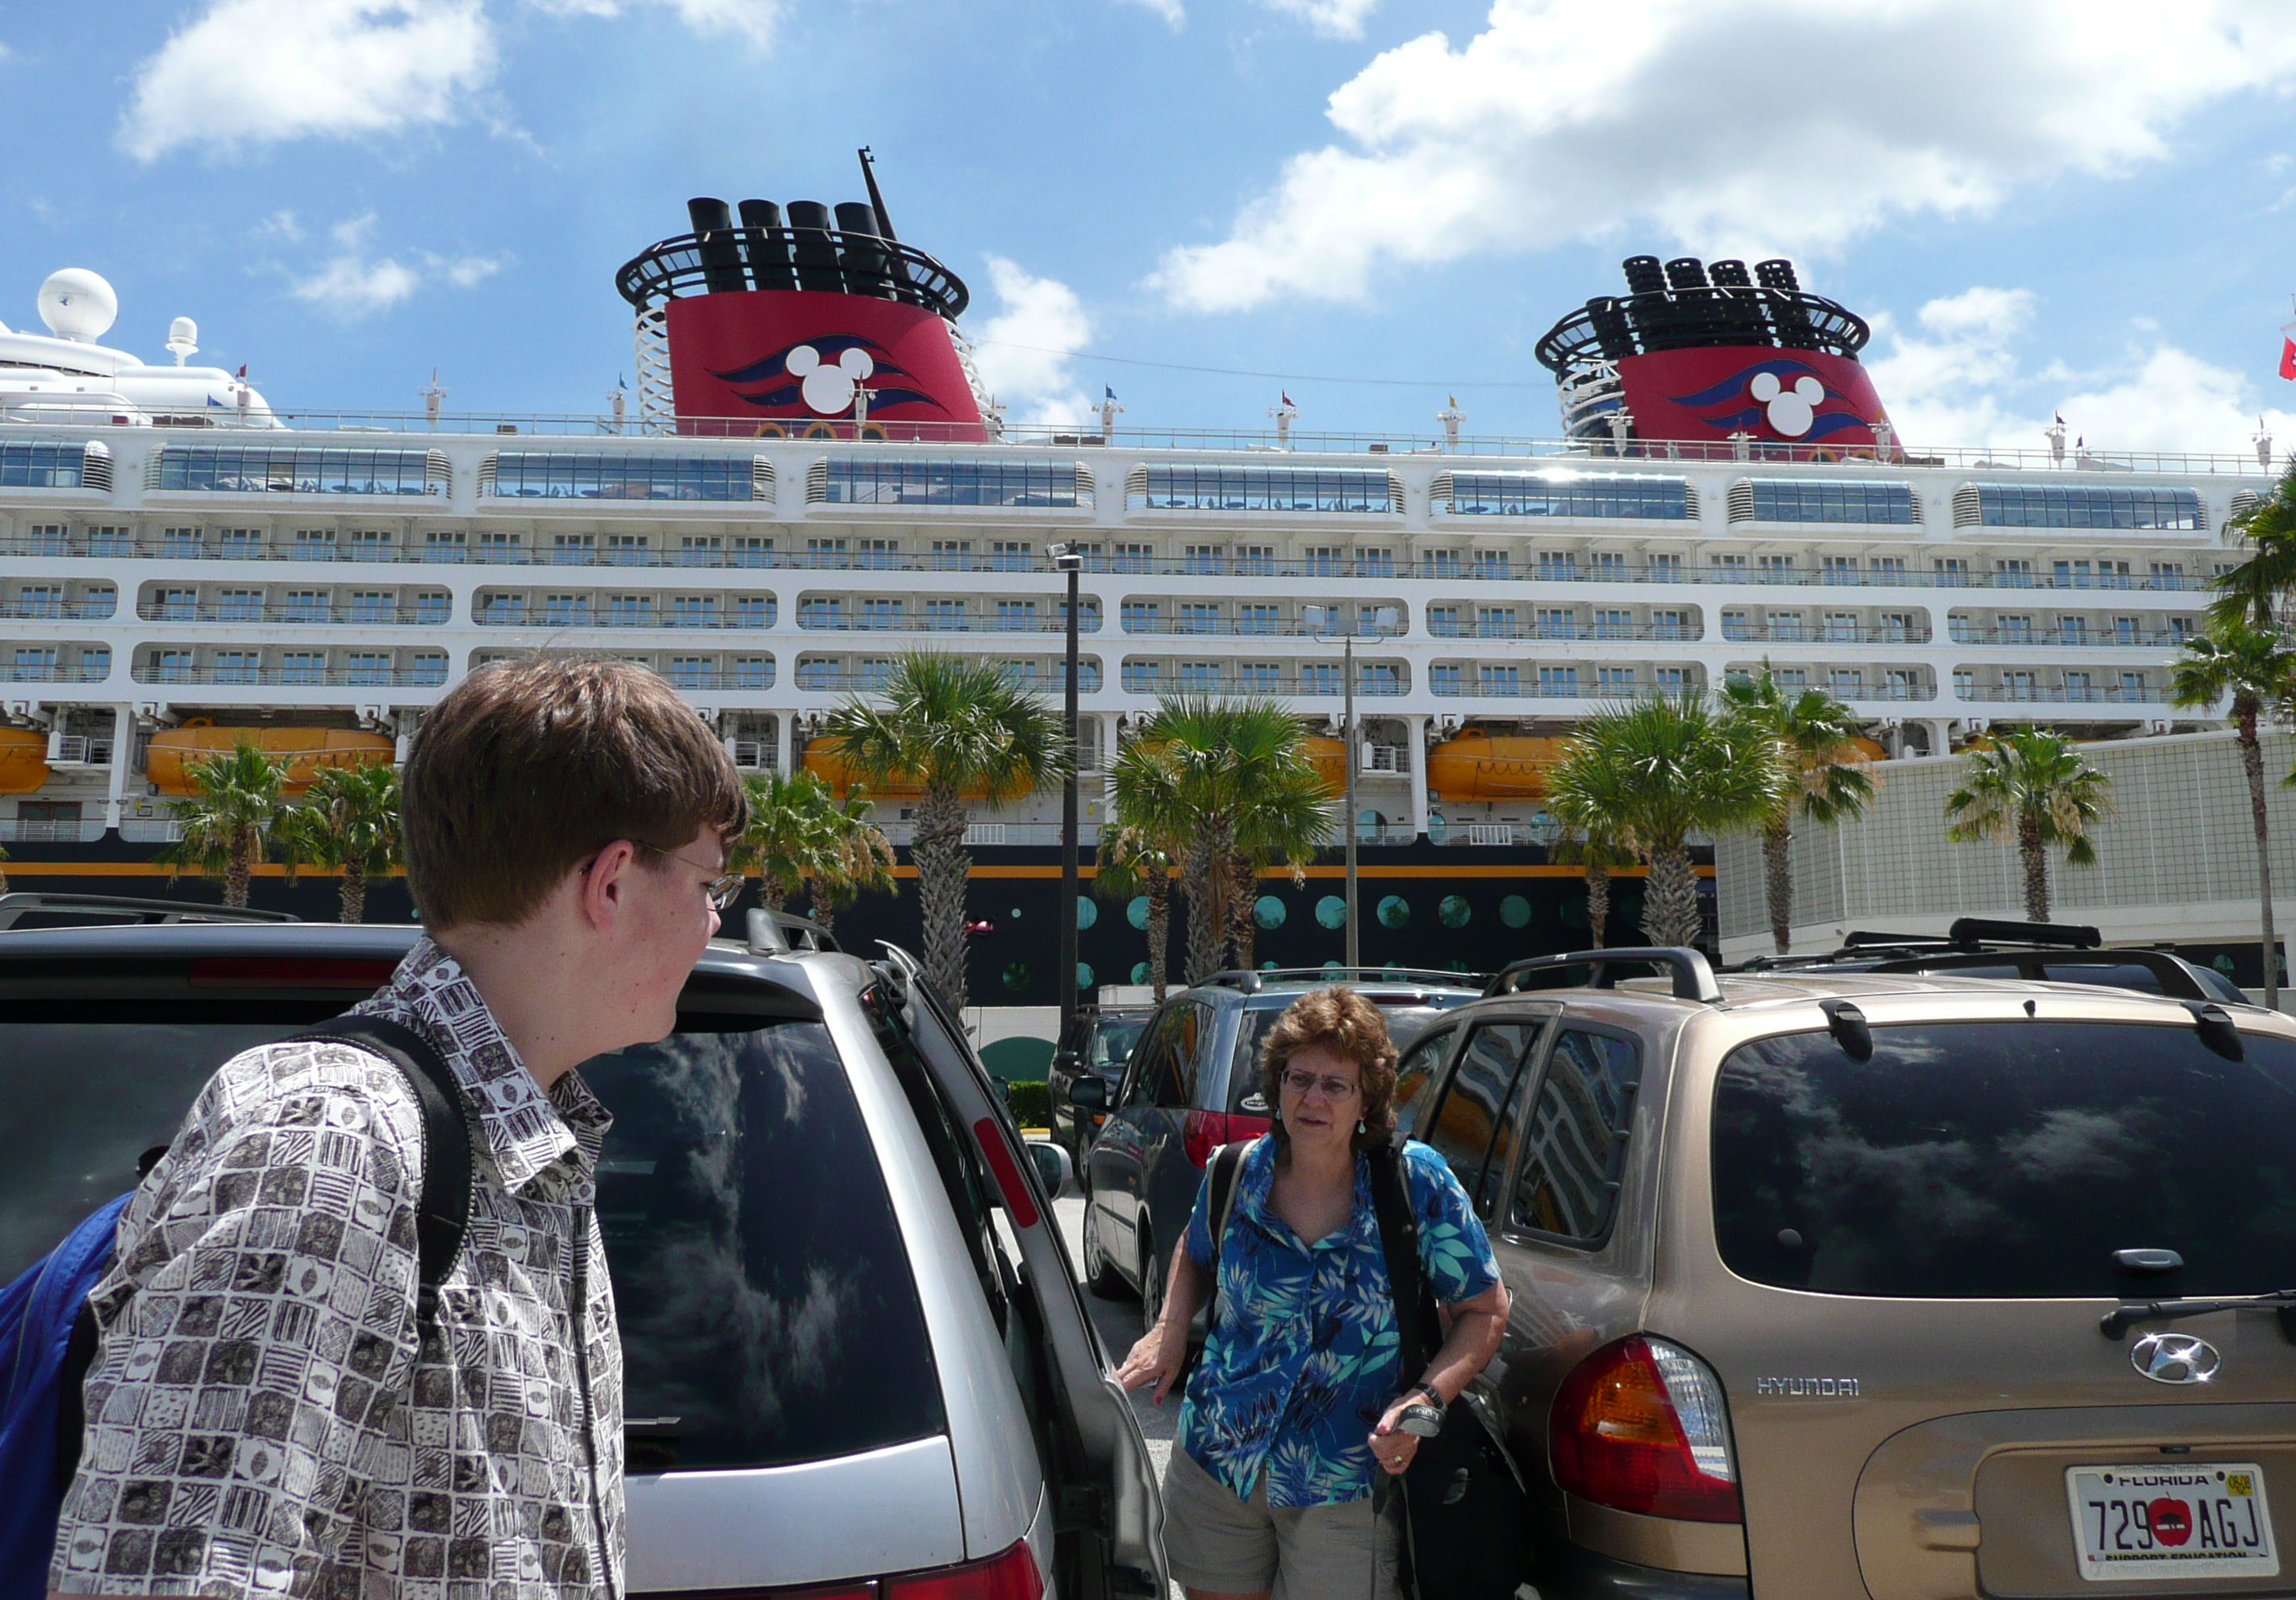 Getting ready to go cruising on the Disney Cruise Line (cruise terminal at Port Canaveral, FL).